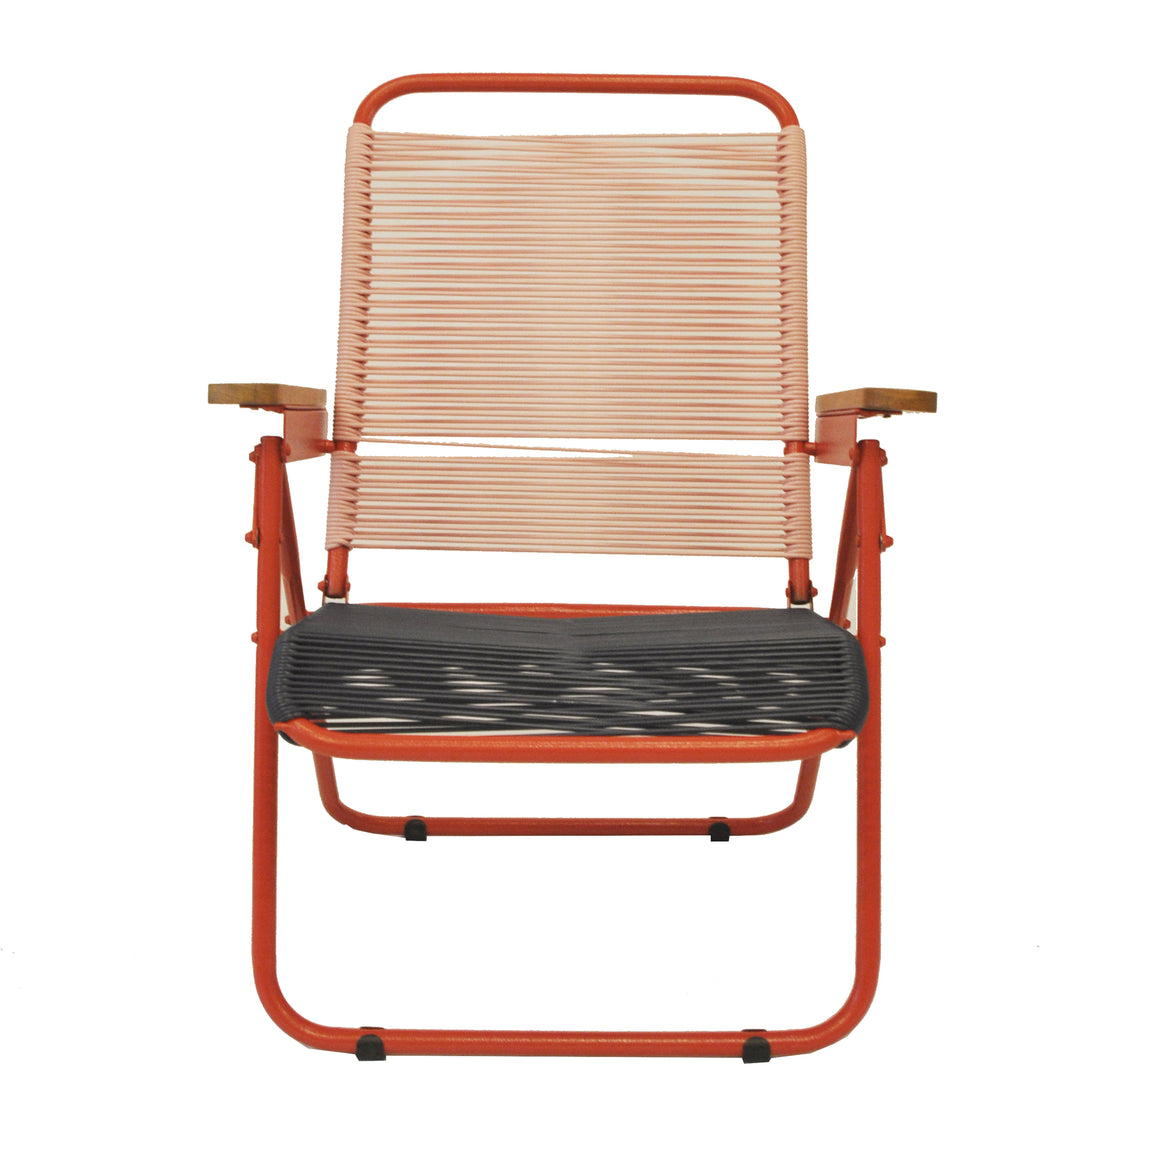 Traveller Chair Tropicalia 2020